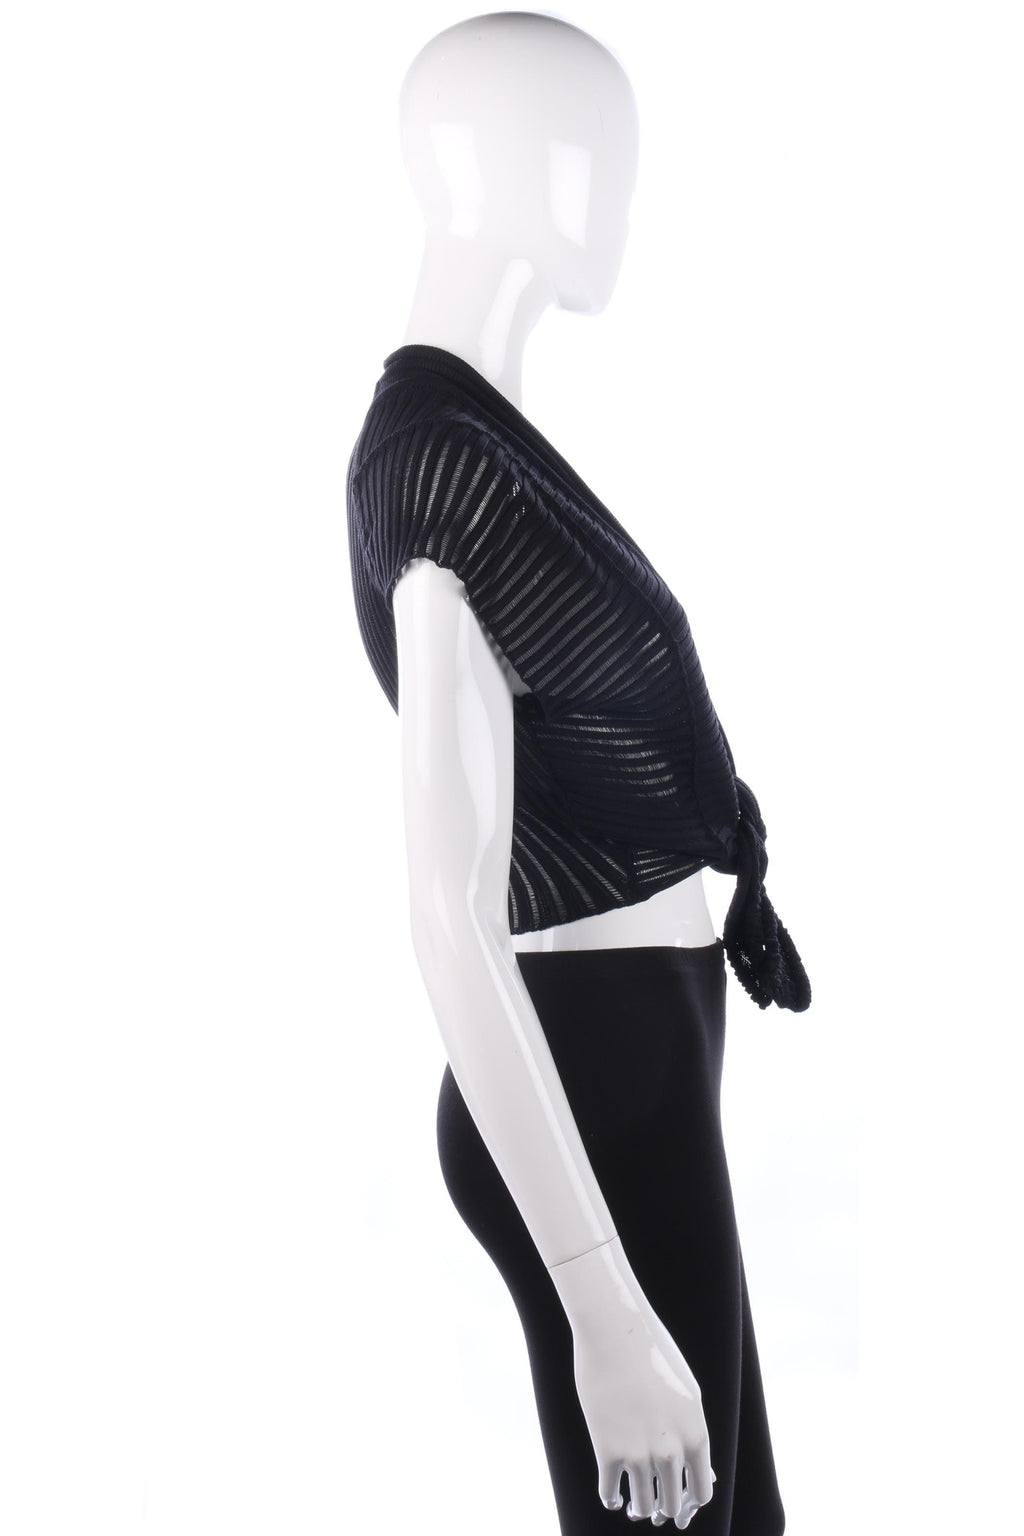 She's So Knitted Black Sleeveless Cardigan. Stunning Italian Designer. Size S